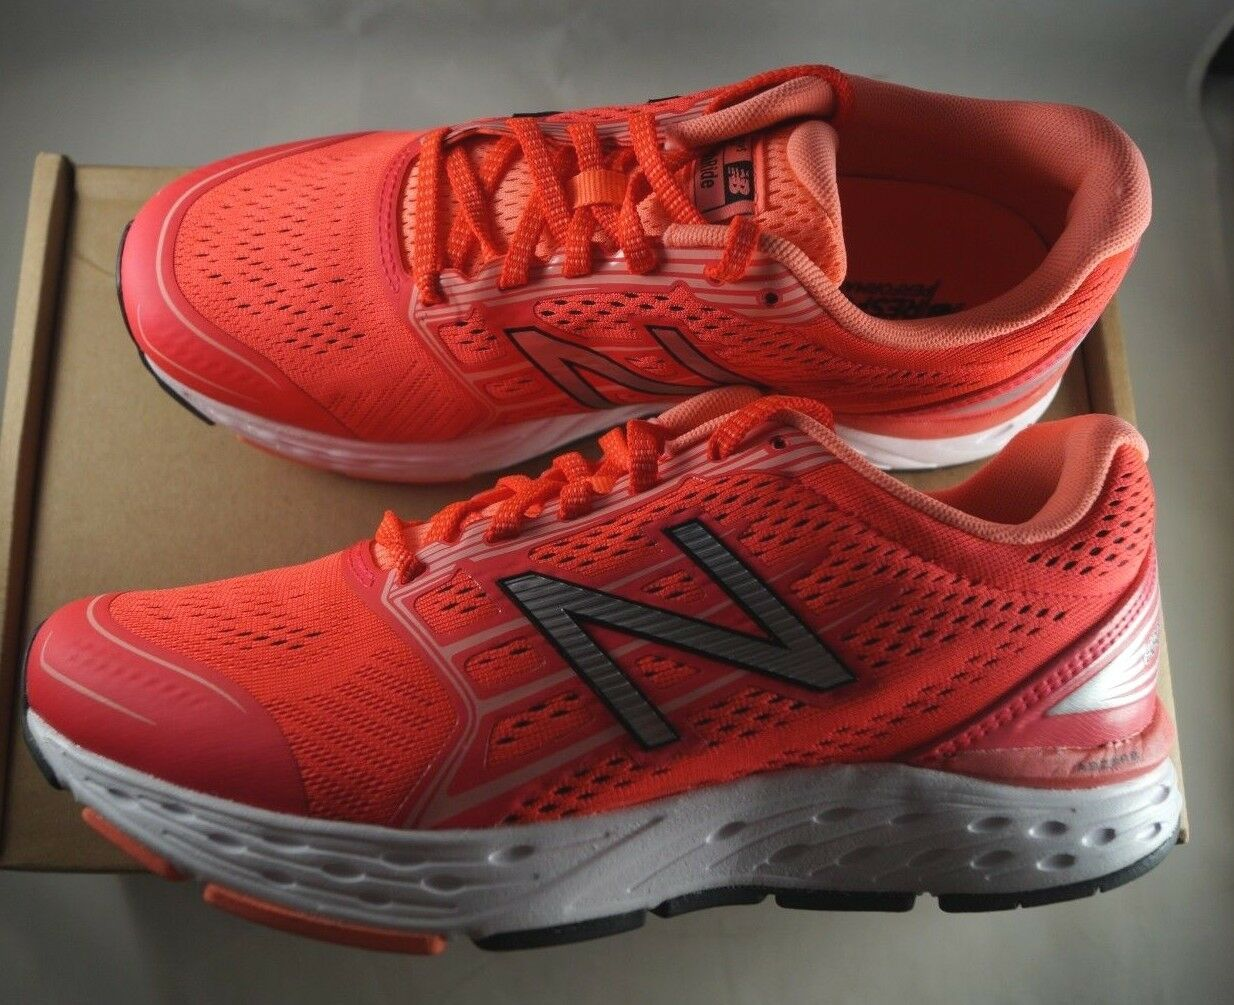 New Balance Women's 680v5 Cushioning Running shoes Coral Size 9  (B)  70% off